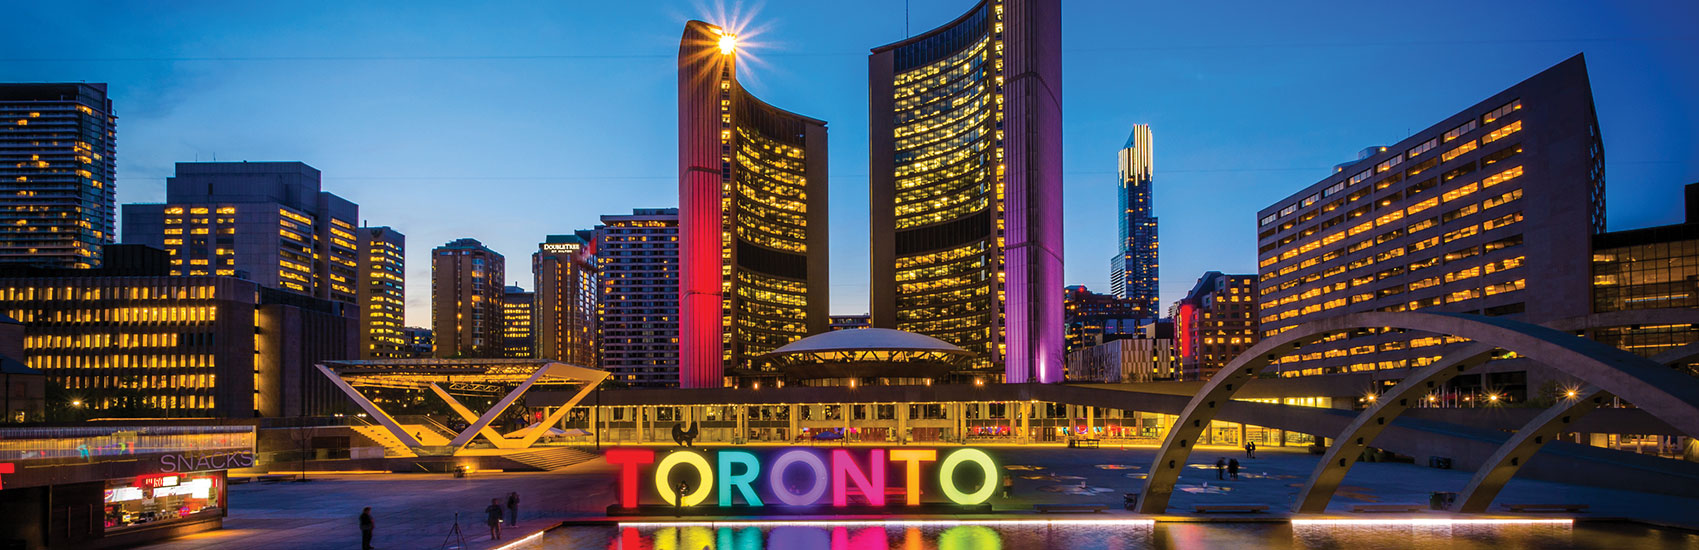 Discover Canada with Insight Vacations